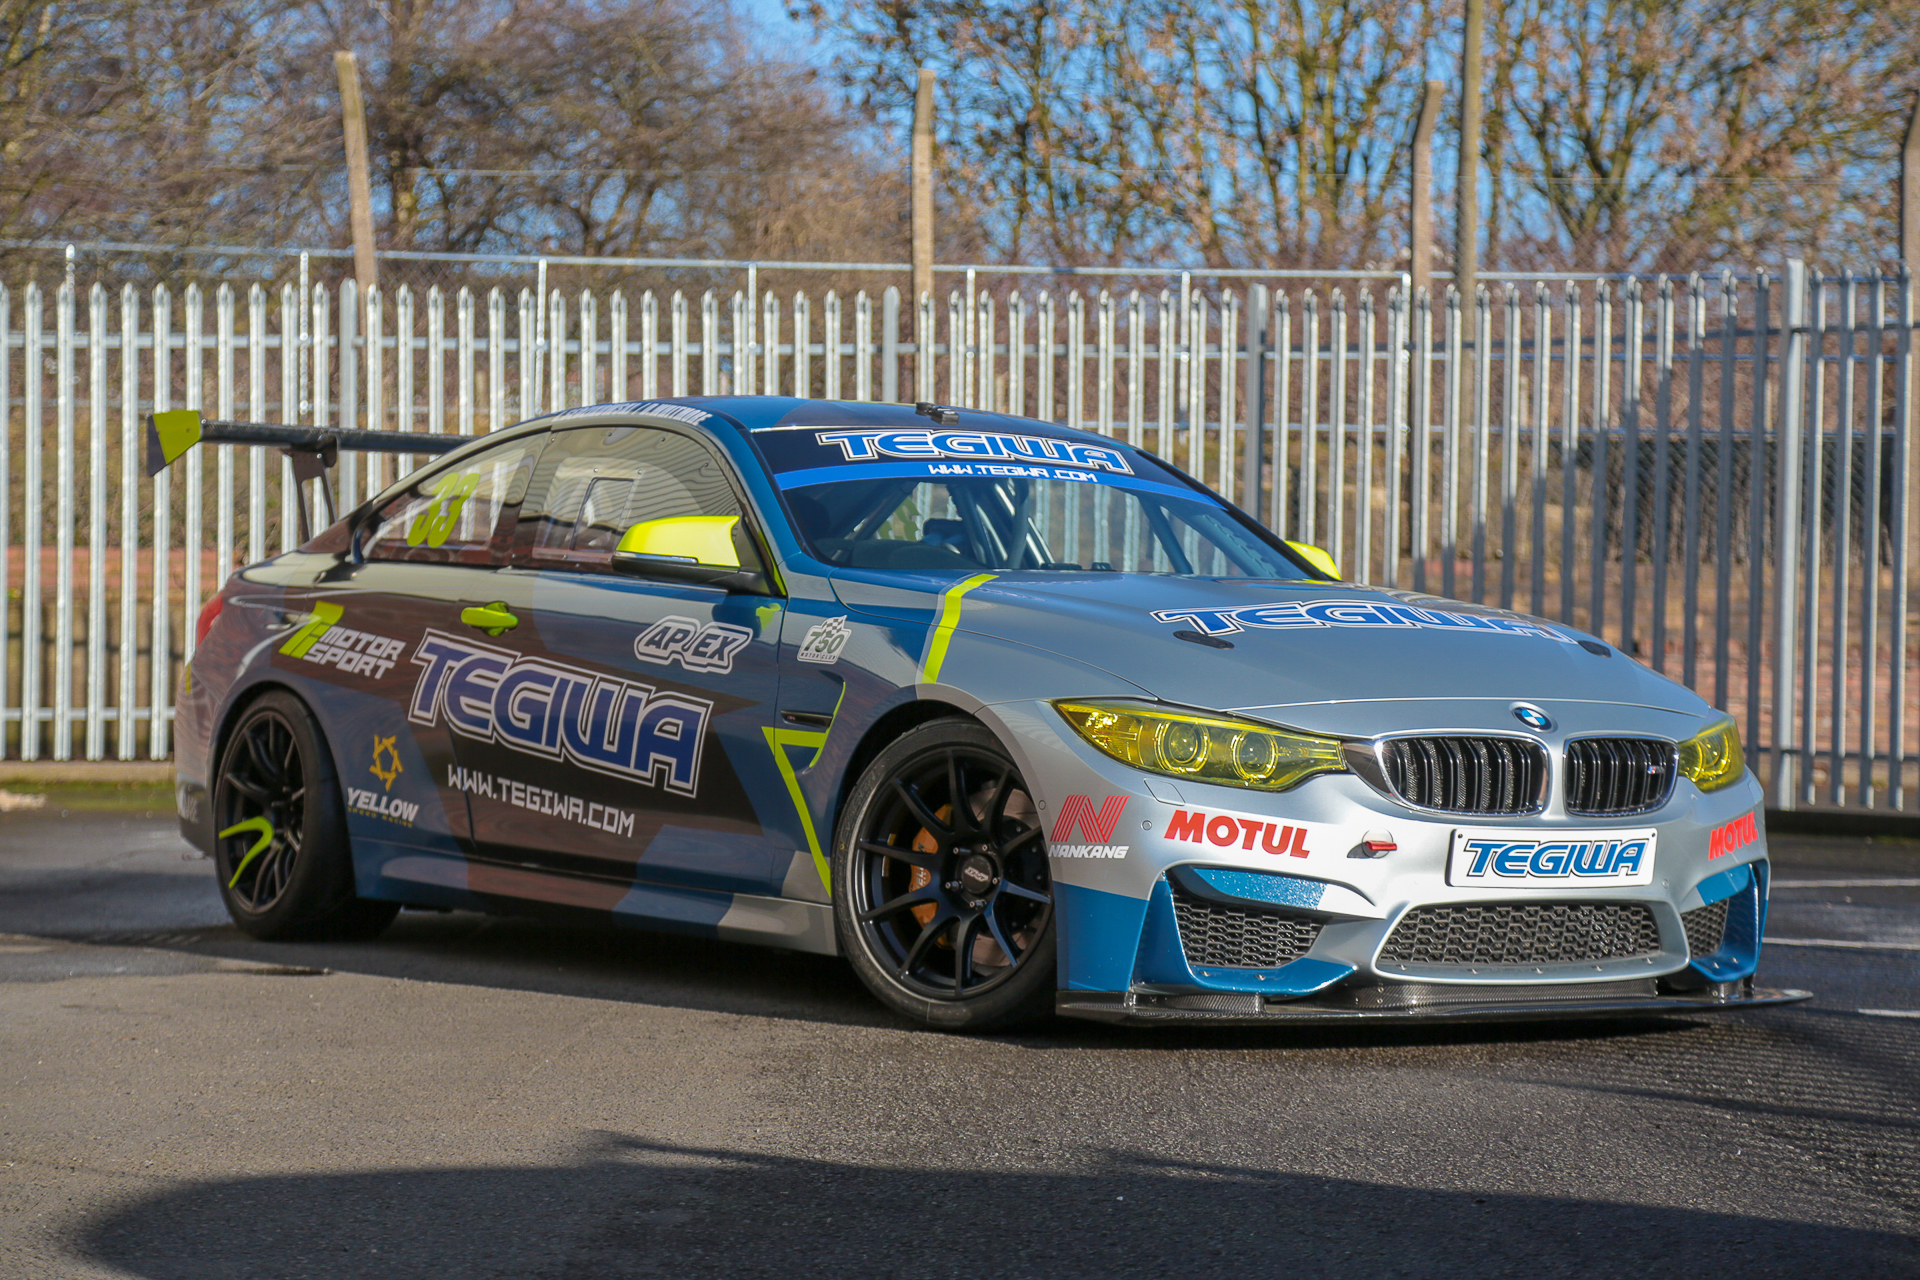 Build A BMW >> M4 Build Part 7 Out For All To See Tegiwa Automotive Blog